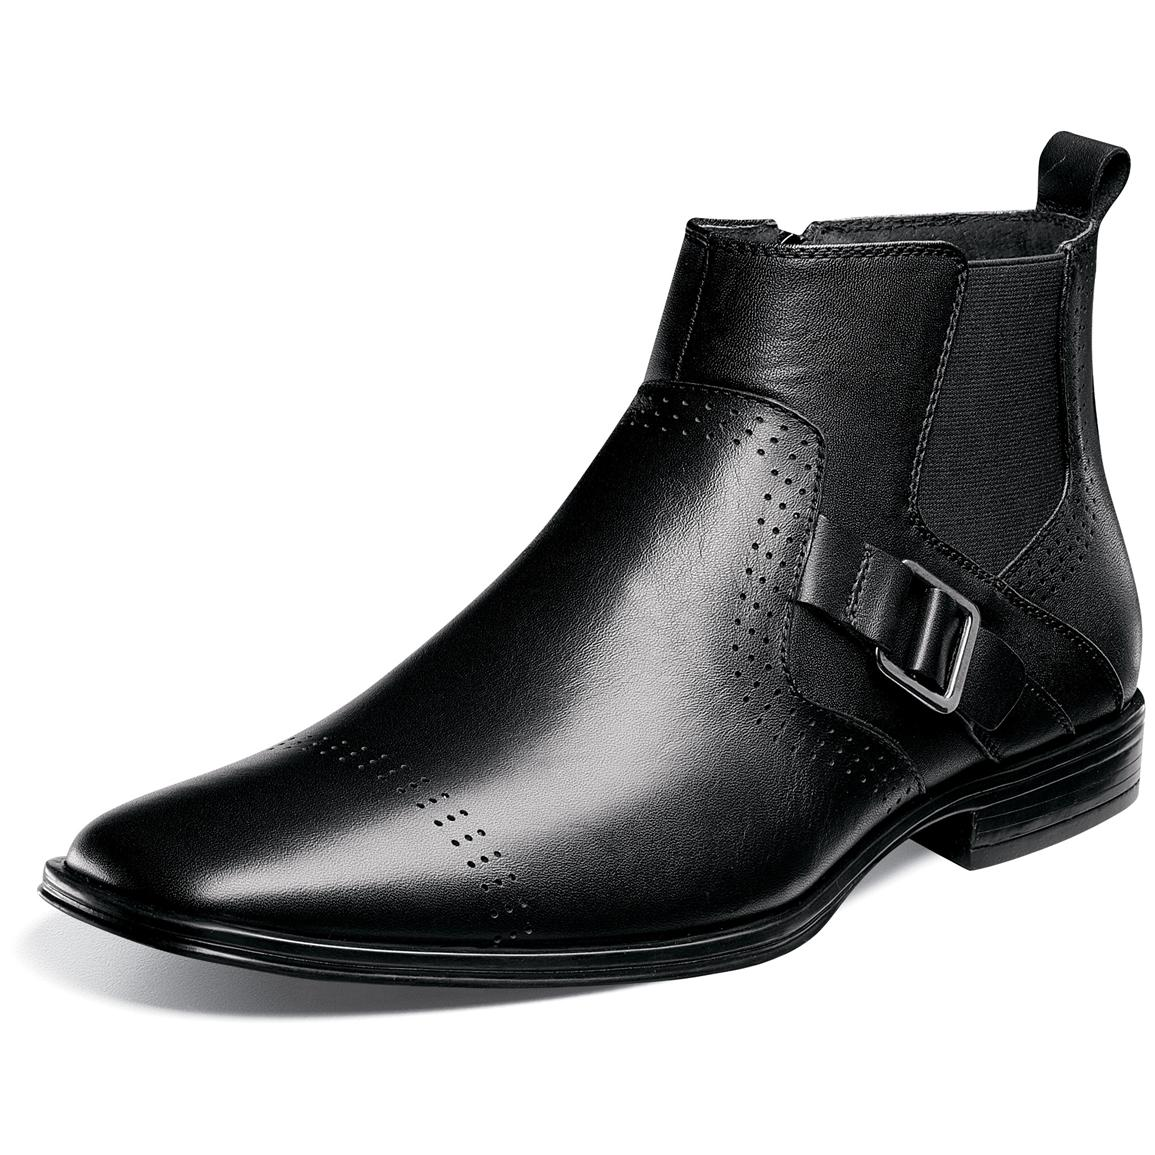 Men's Stacy Adams® Mason Dress Shoes, Black